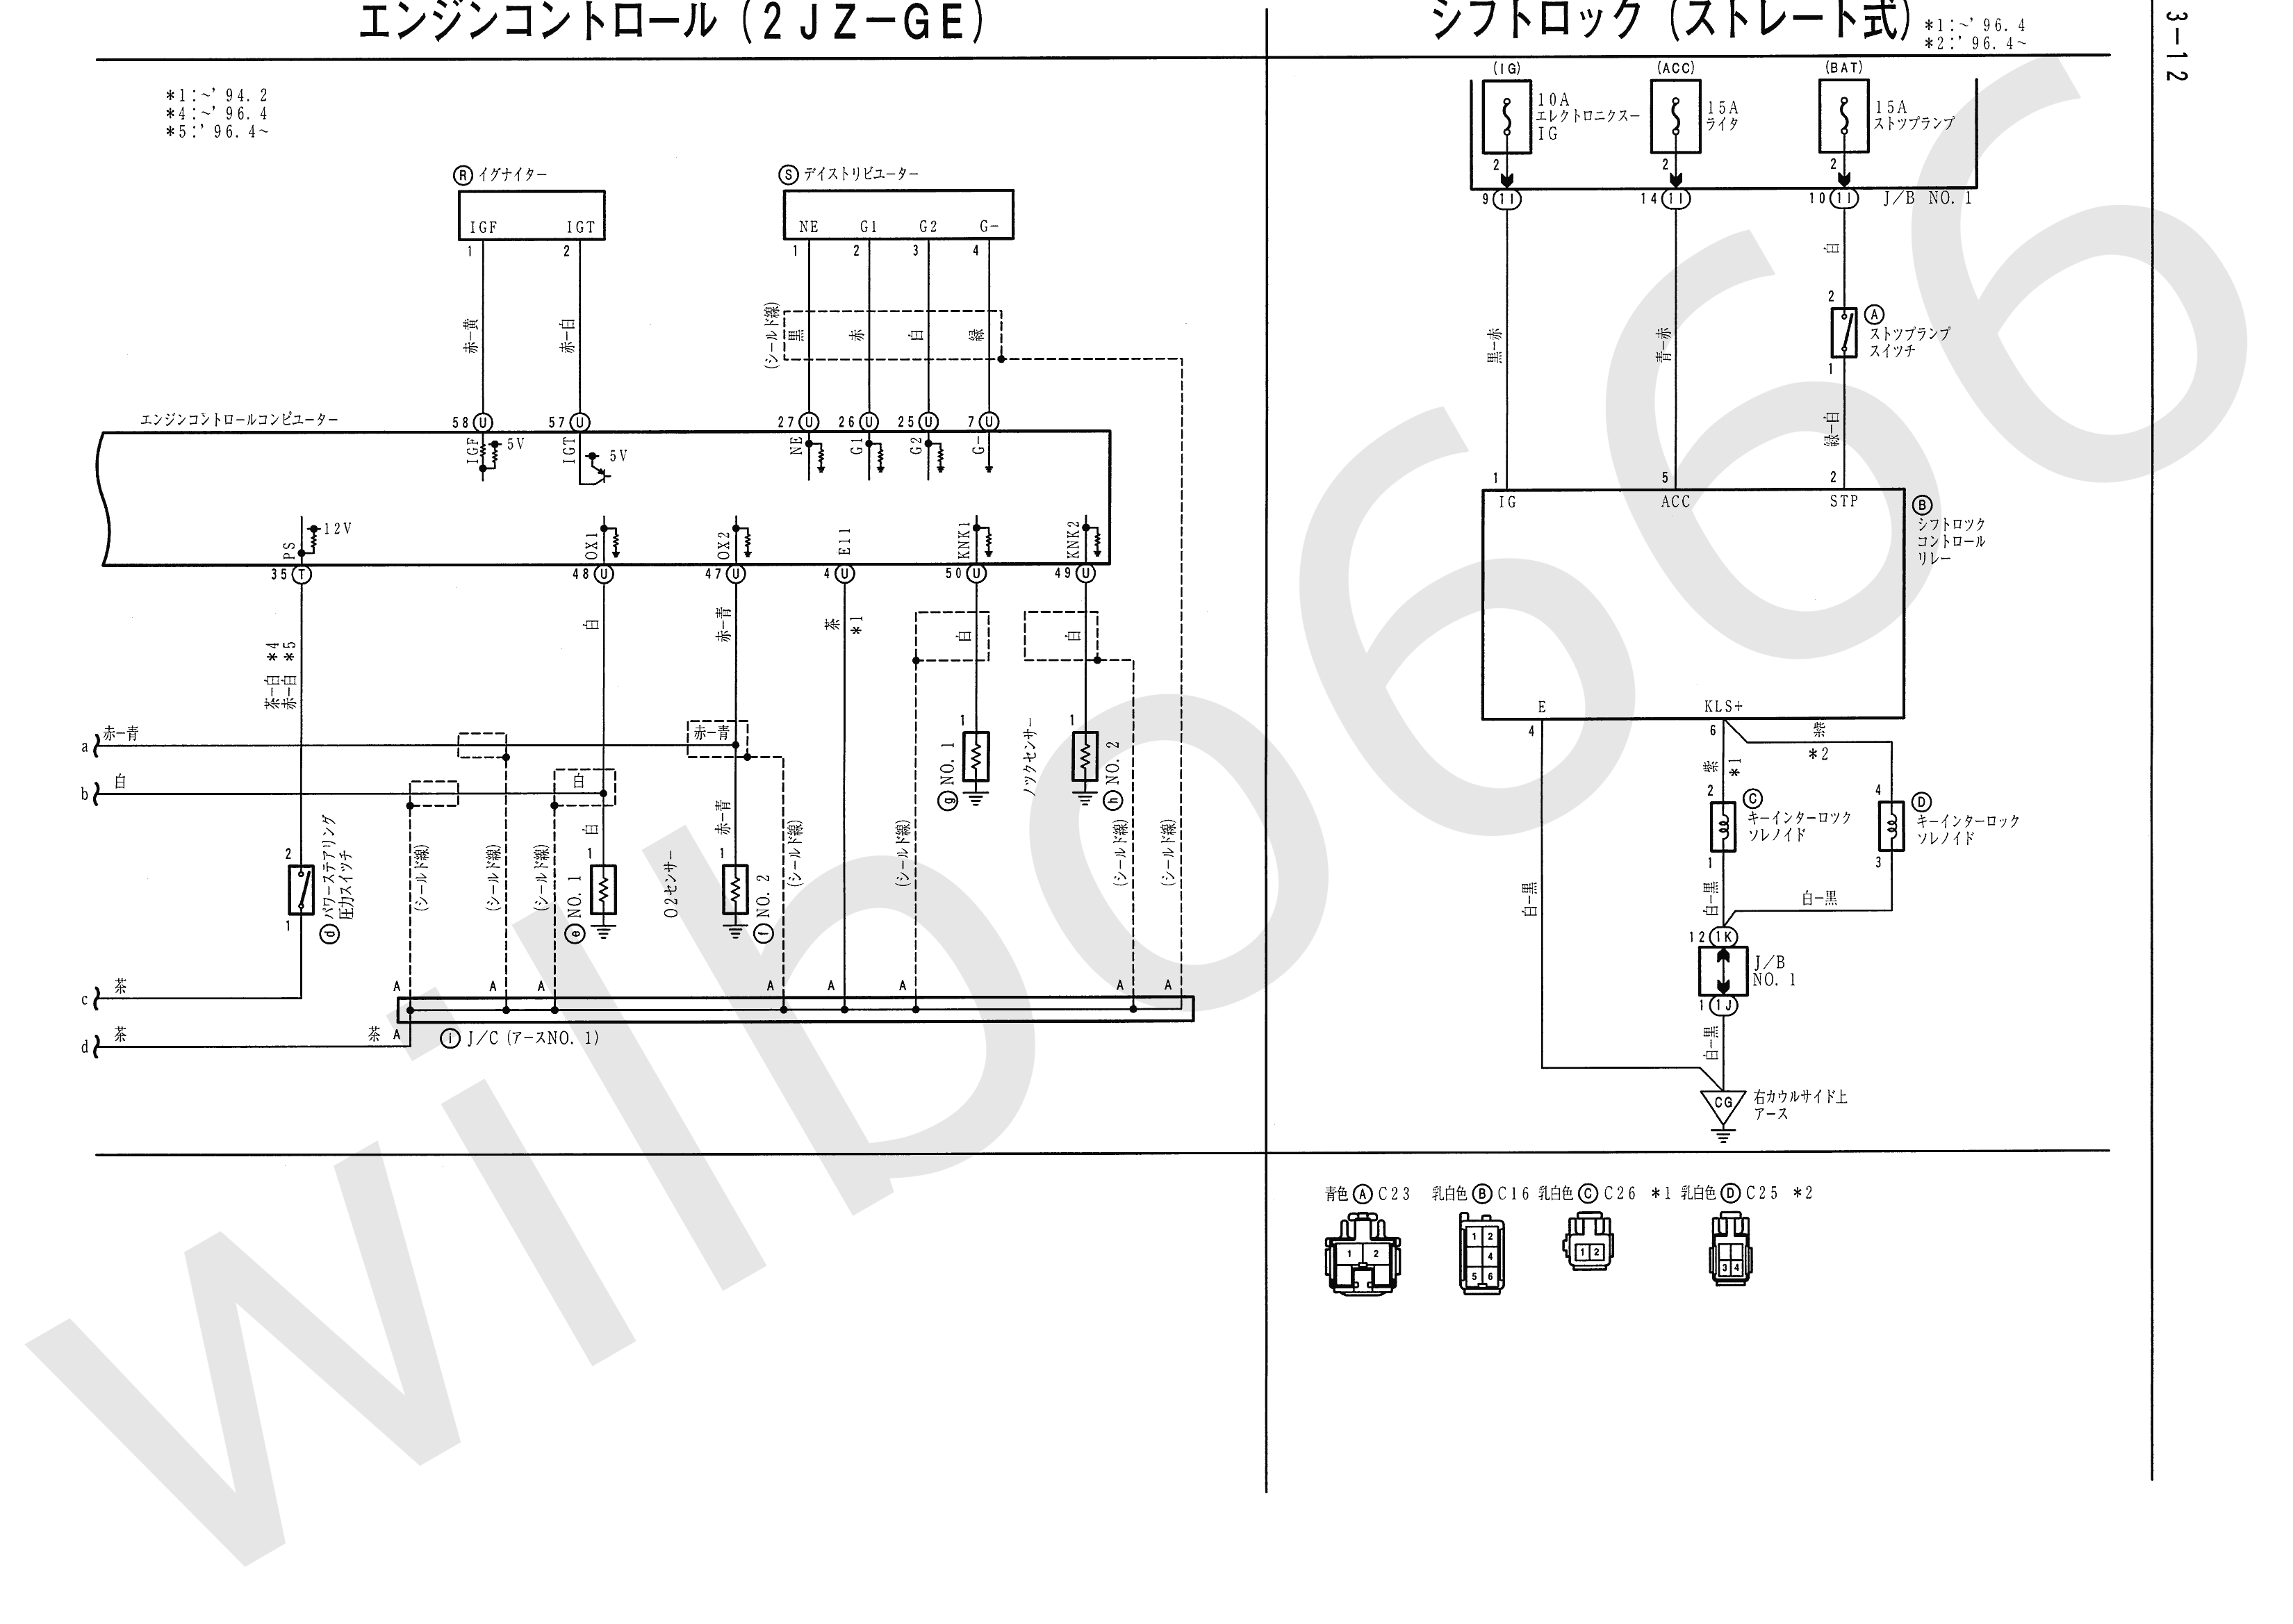 JZA80 Electrical Wiring Diagram 6742505 3 12 wilbo666 2jz ge jza80 supra engine wiring wiring diagram book at n-0.co